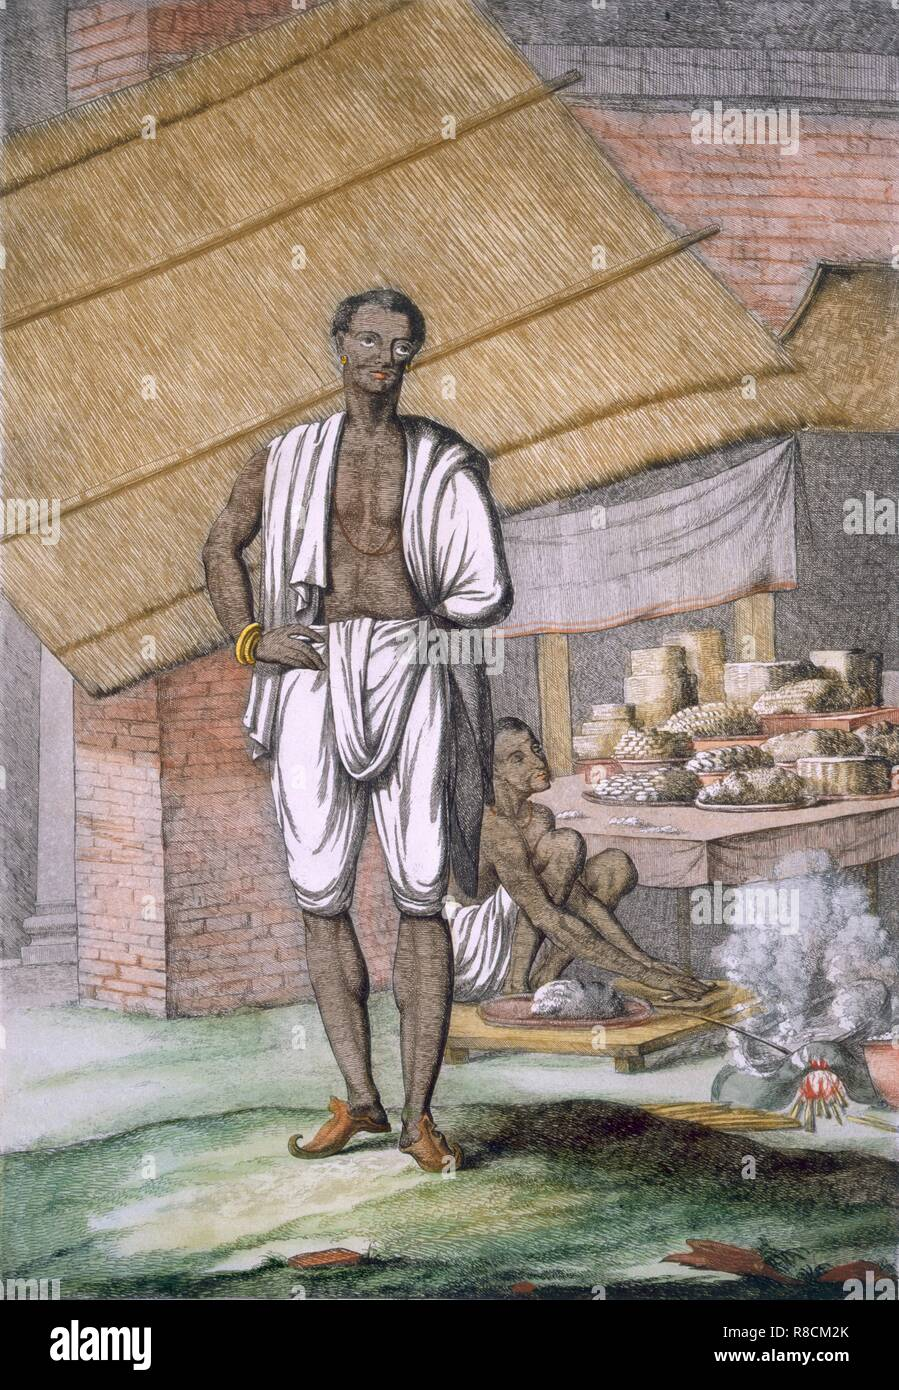 Houalouays', a confectioner or pastry cook, from 'Les Hindous ou la Description de leurs Moeurs Coutumes et Ceremonies', pub. 1808-12 (coloured etching). A Collection of Two Hundred and Fifty Coloured Etchings: Descriptive of the Manners, Customs and Dresses of the Hindoos; Volume I is devoted to religious castes and cermonies; Volume II to occupations and musical instruments; Volume III to sailing craft; and Volume IV to indigenous flora and fauna. - Stock Image